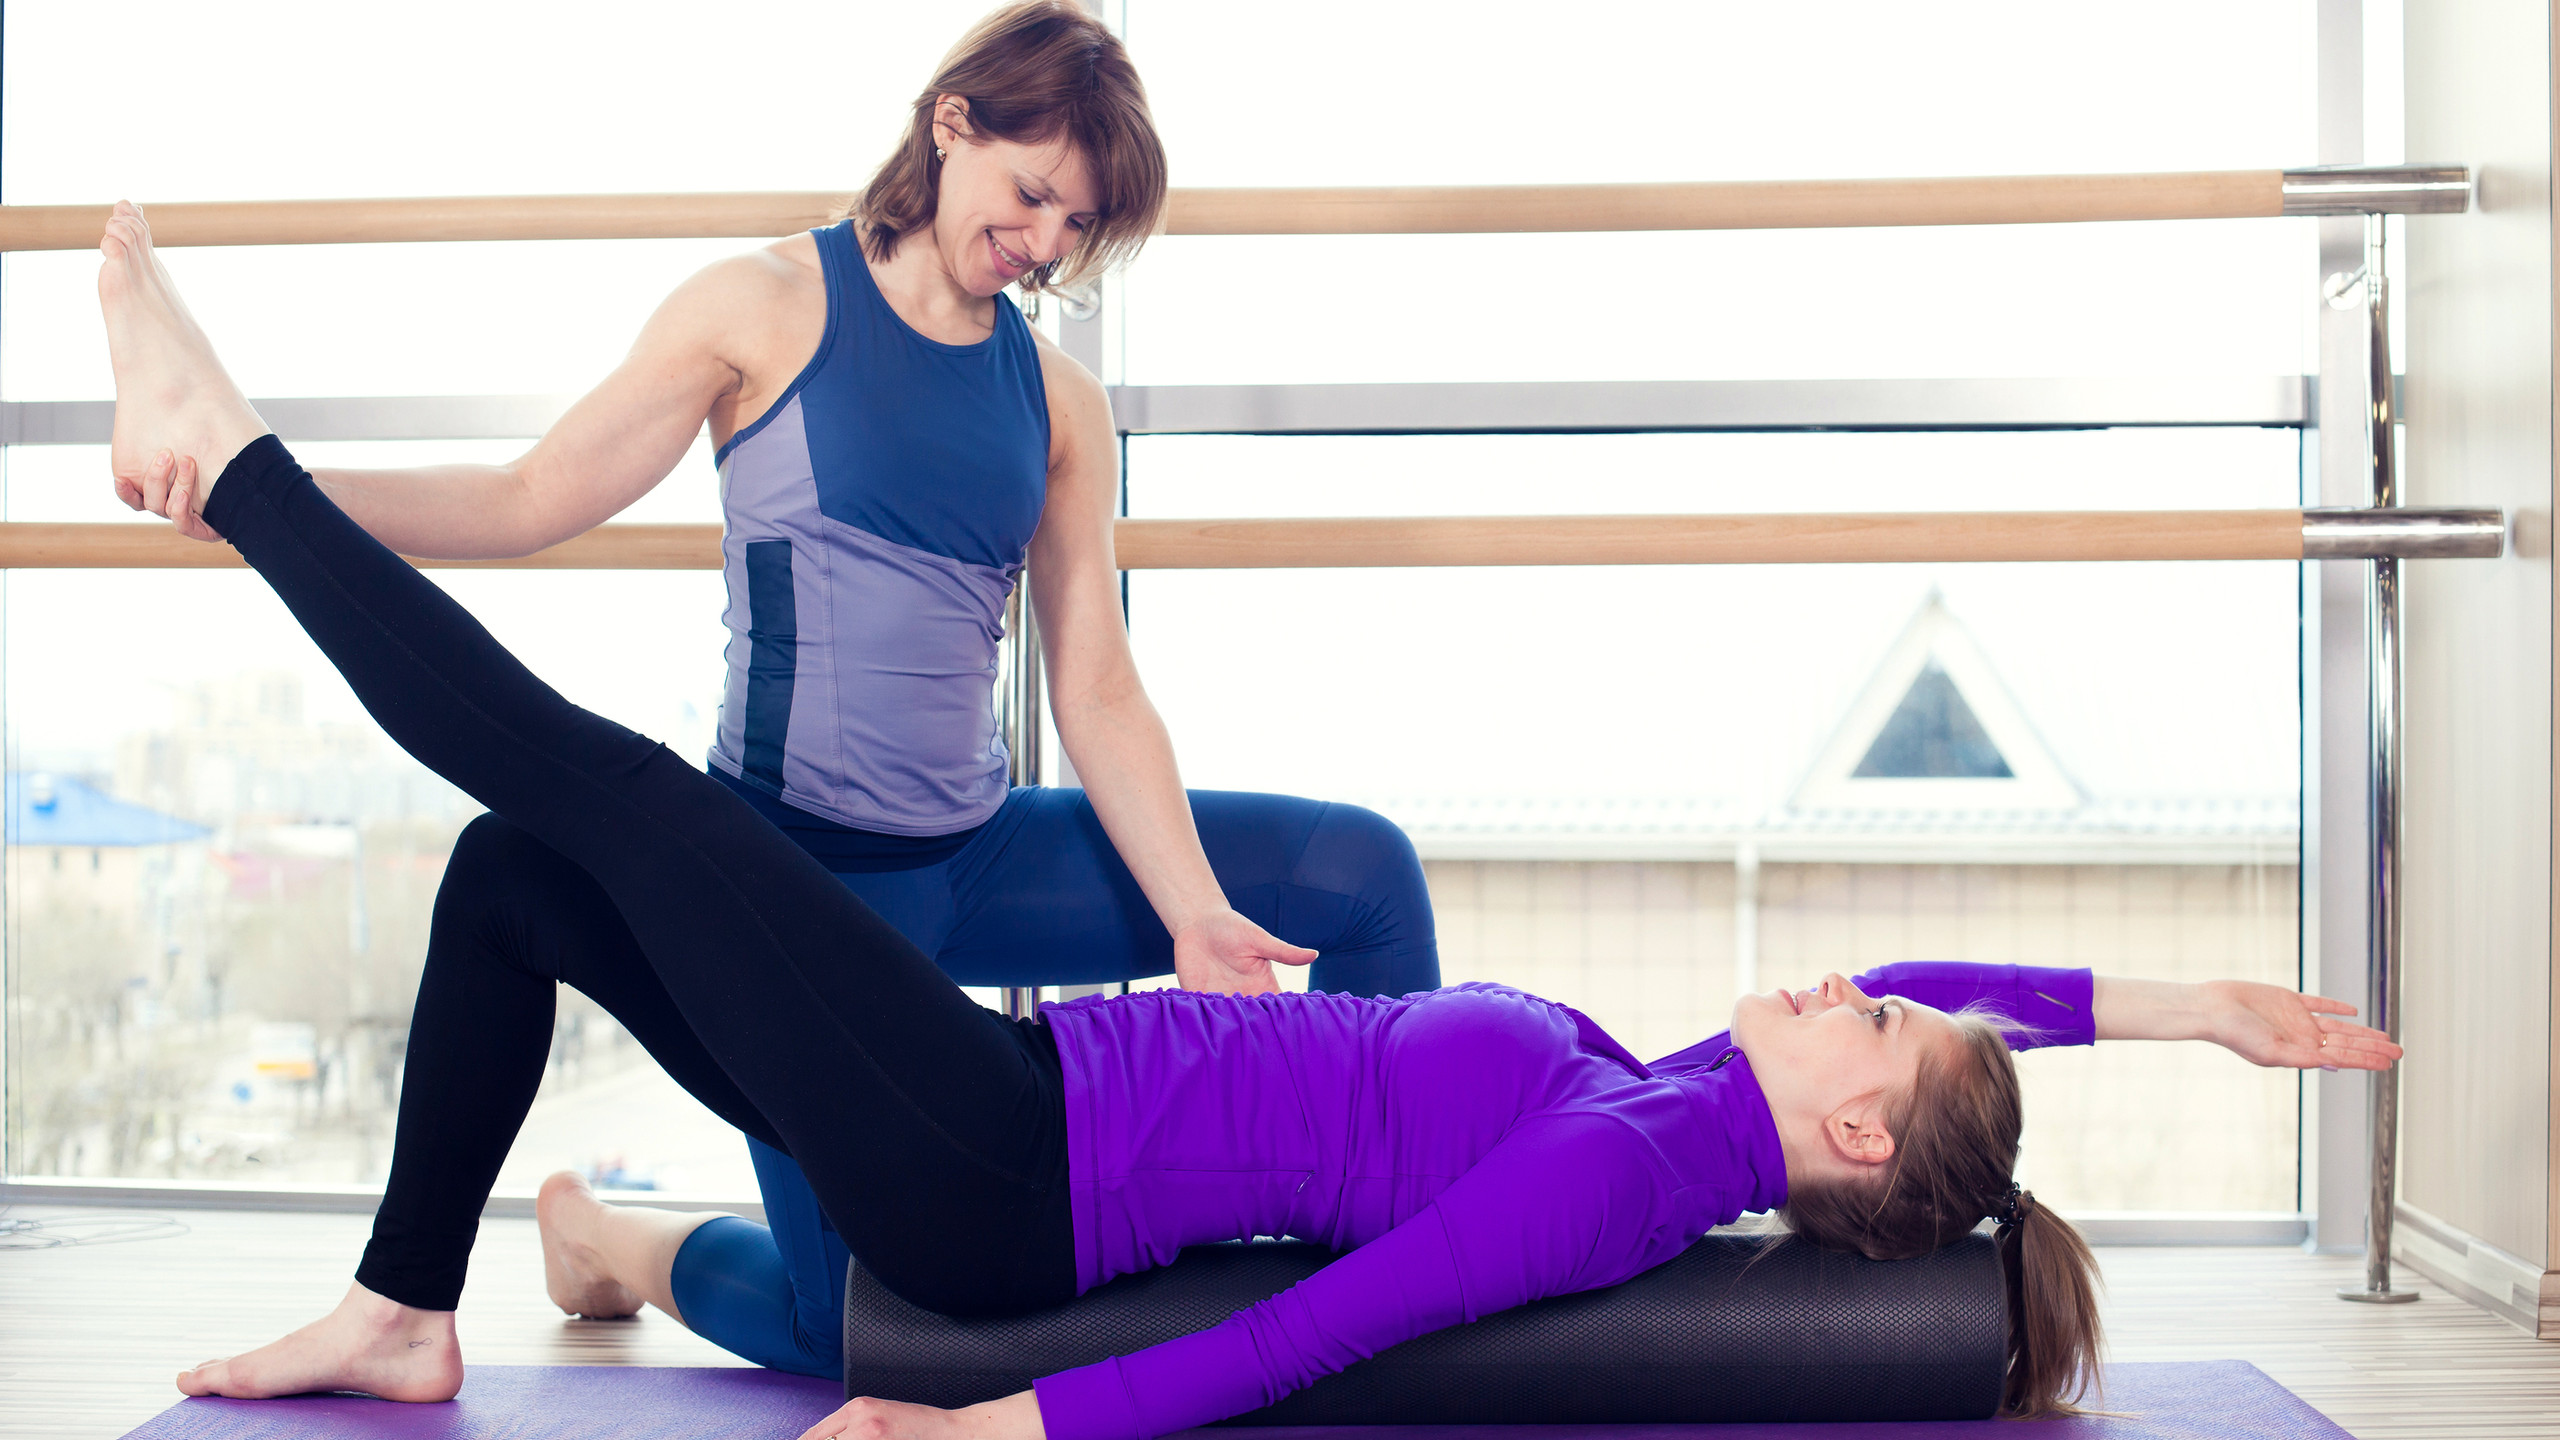 Foam Rollers are utlitized to improve mobility of fascia / connective tissues